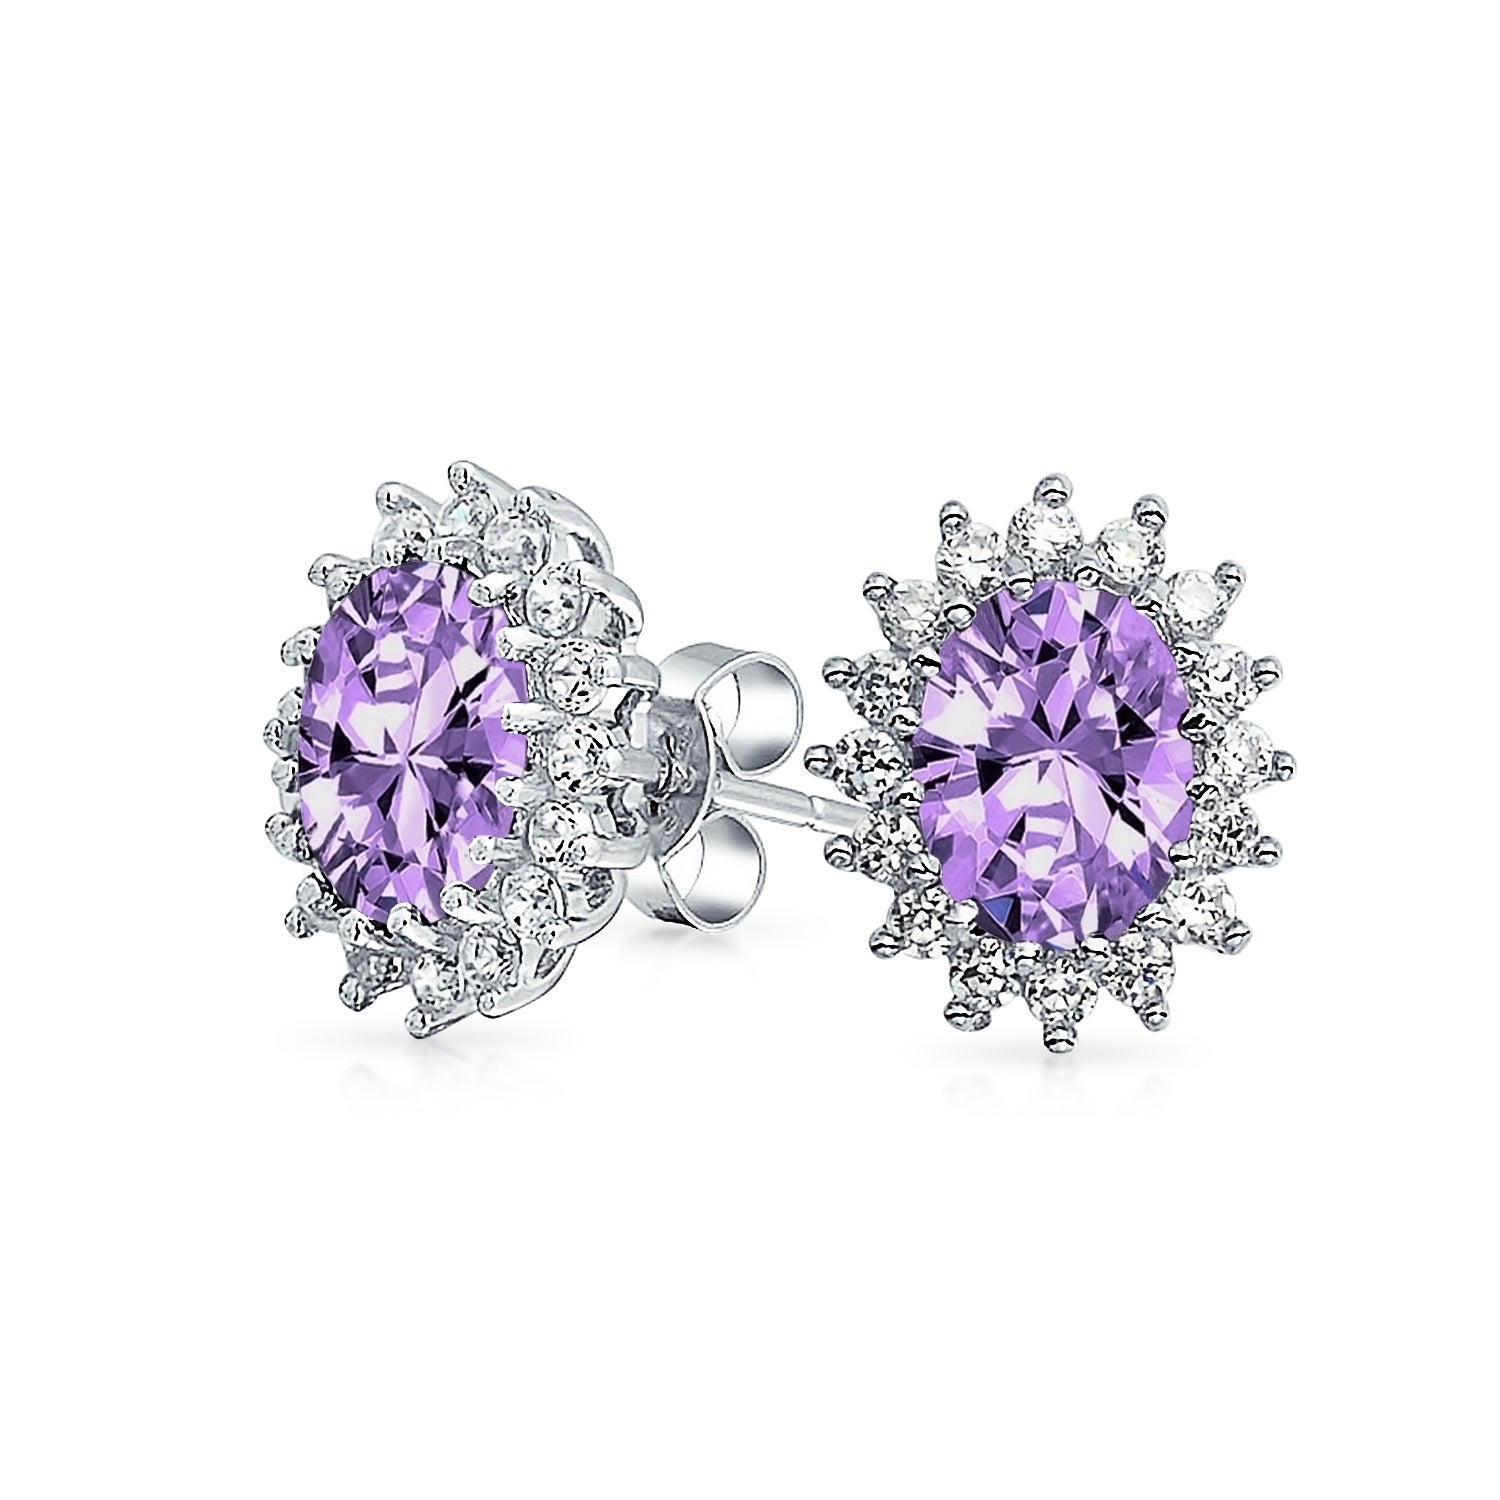 Bling jewelry oval purple cz flower crown stud earrings 925 sterling bling jewelry oval purple cz flower crown stud earrings 925 sterling silver 12mm free shipping on orders over 45 overstock 24157852 izmirmasajfo